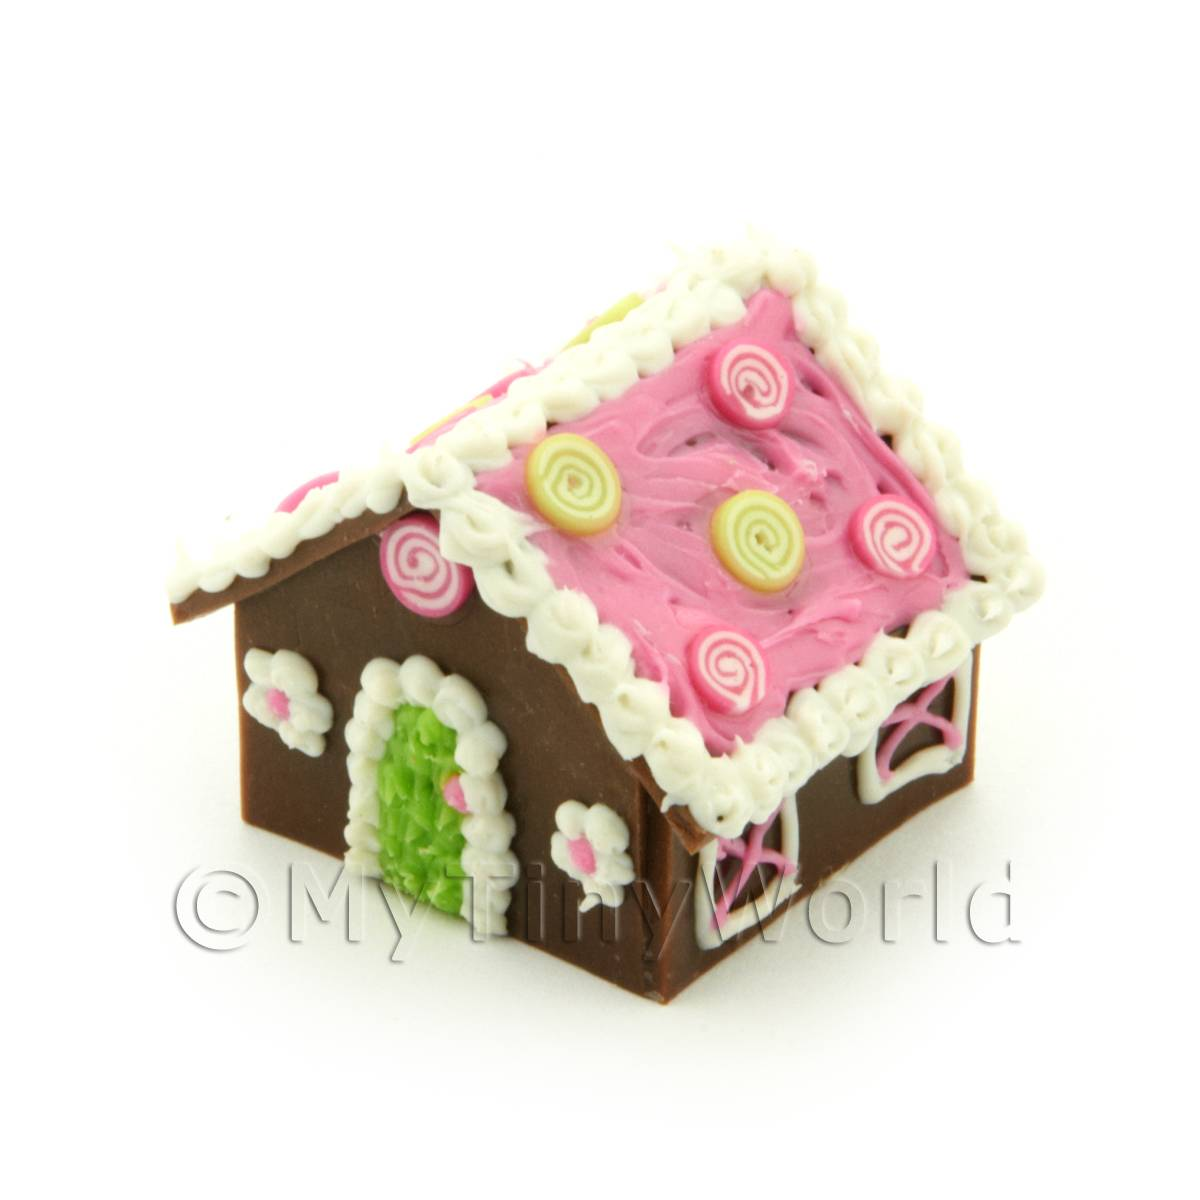 Dolls House Miniature Pink Roof Gingerbread House